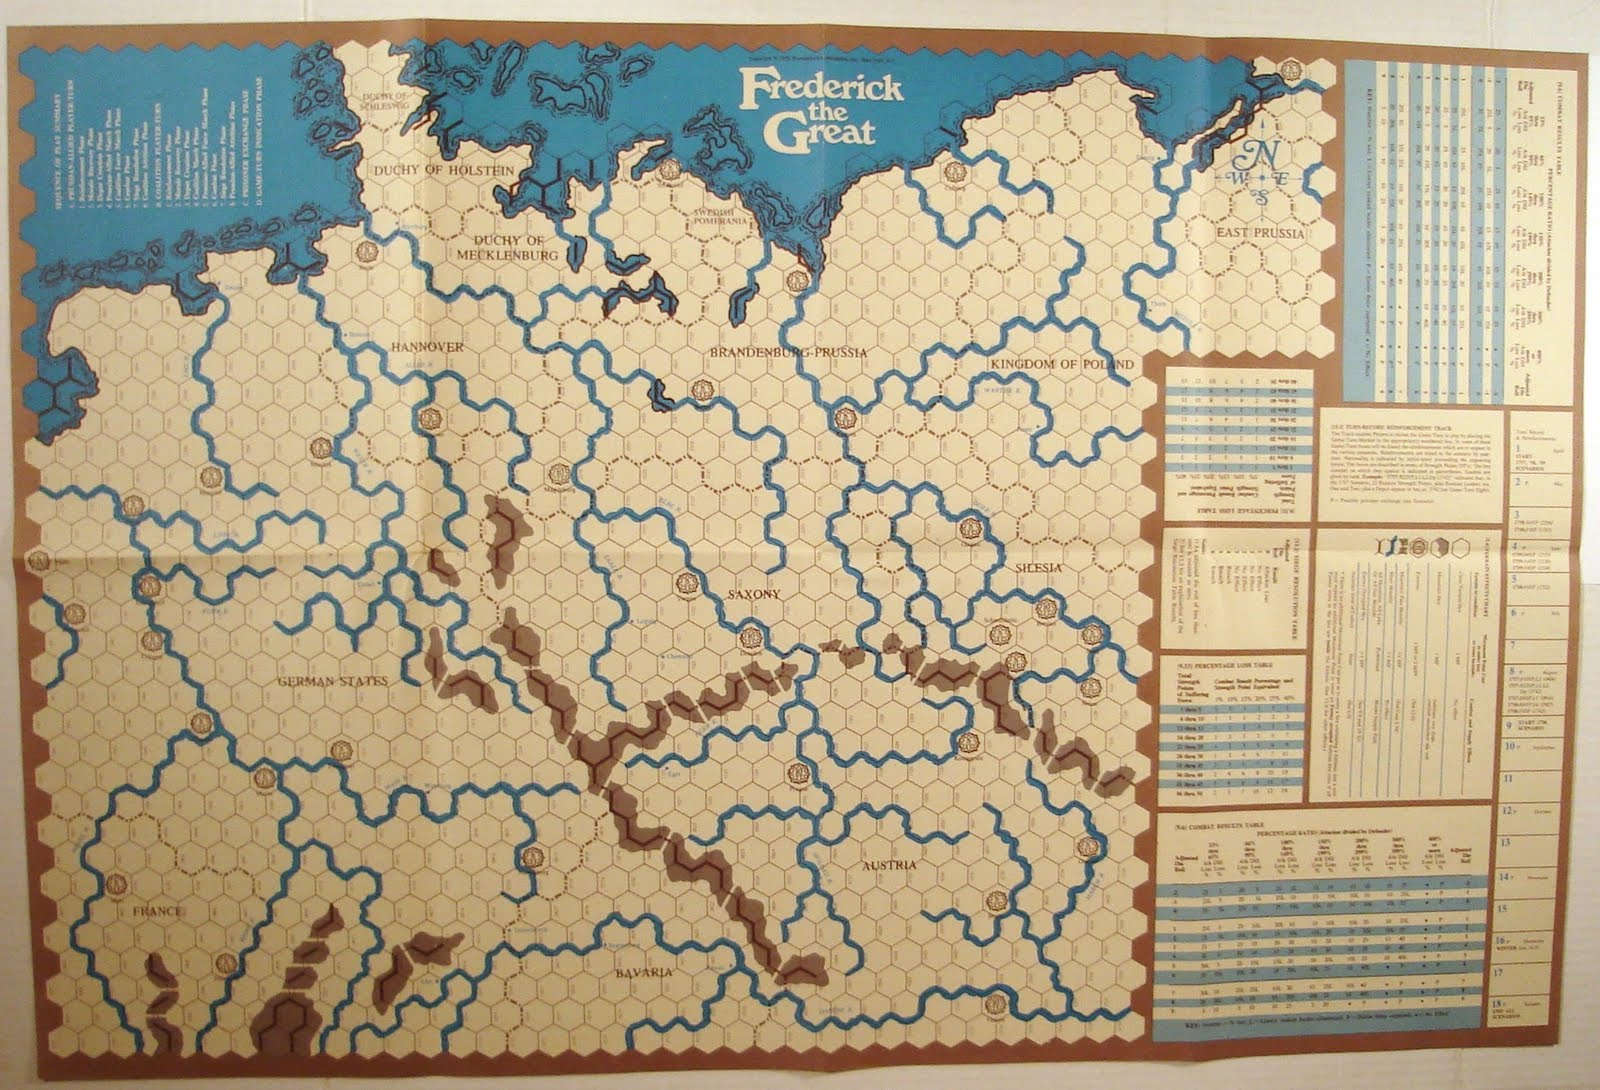 Map and counters spi frederick the great 1975 one complete game turn is equal to fifteen days of real time a typical player turn proceeds as follows reinforcement phase morale recovery phase publicscrutiny Images